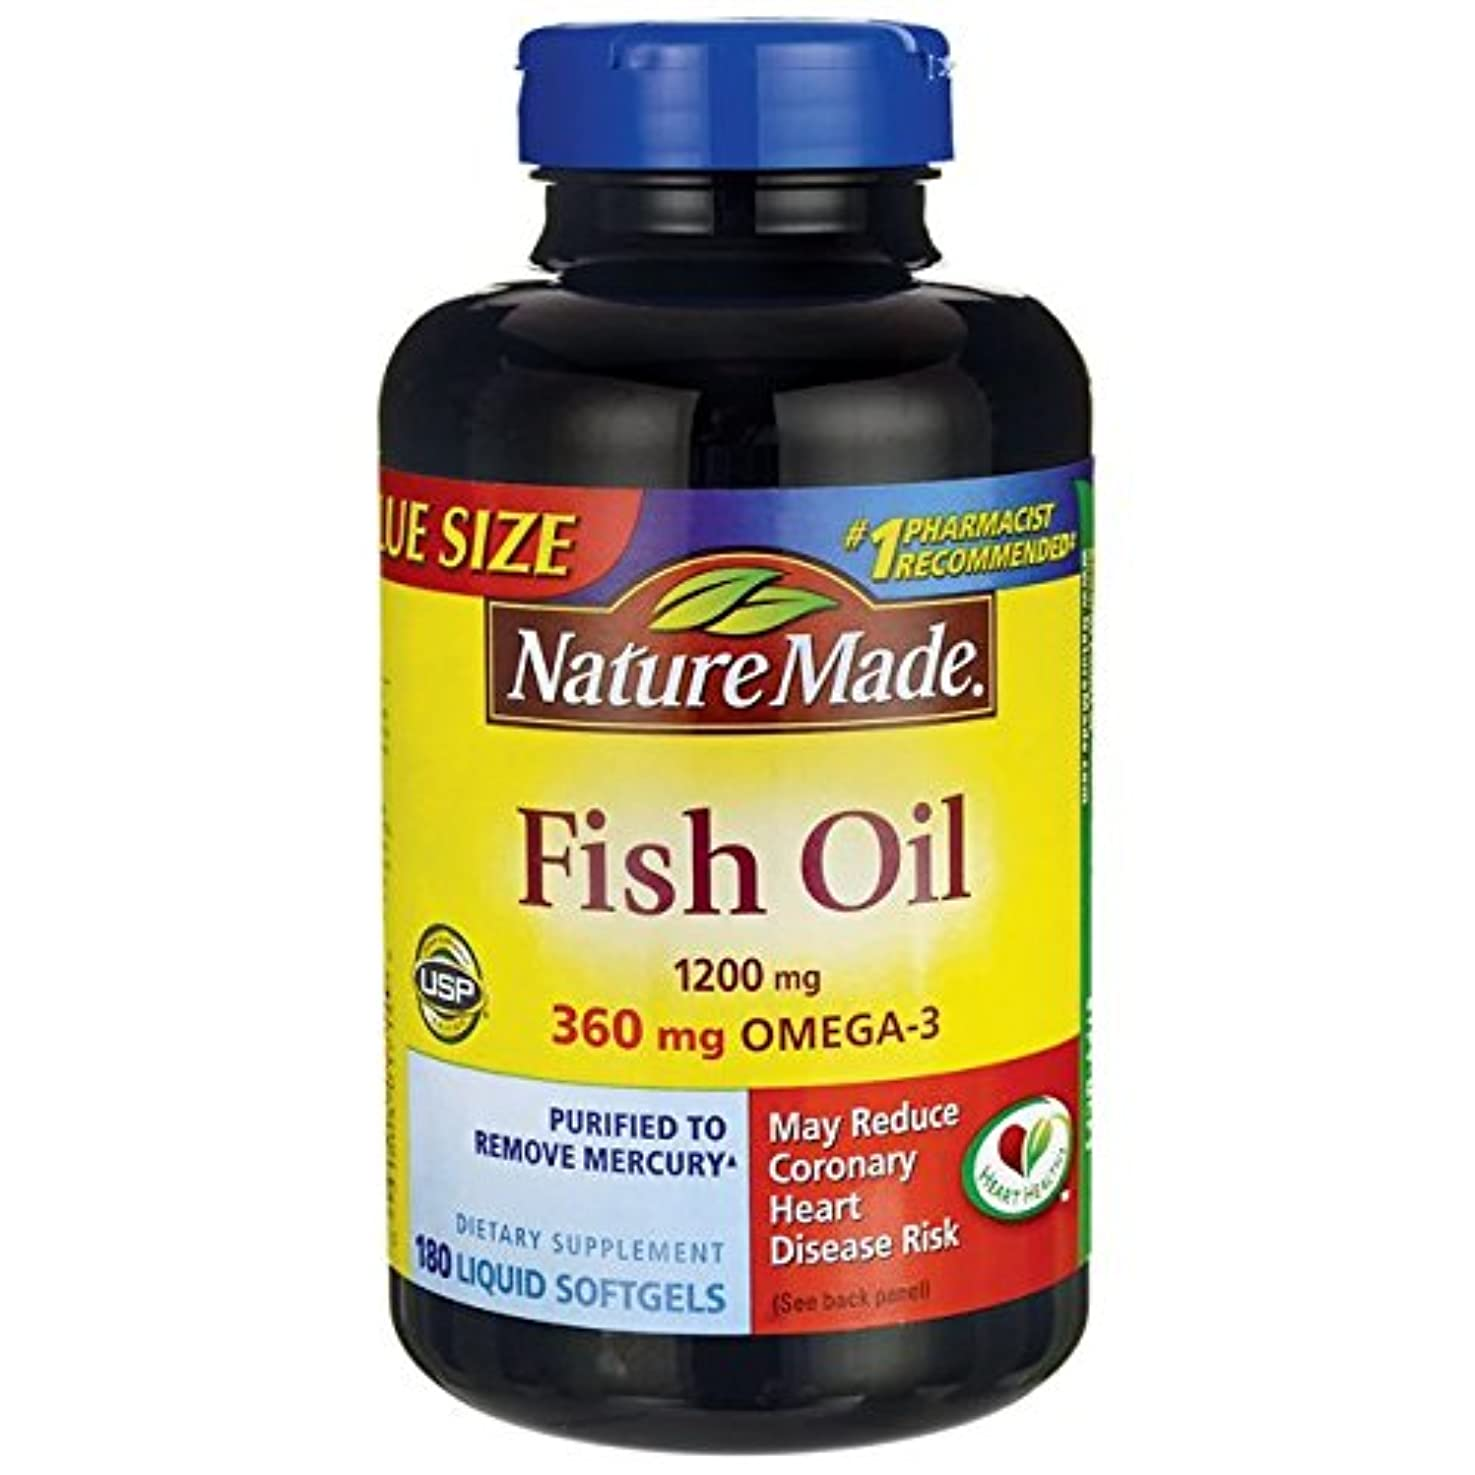 Nature Made Fish Oil Omega-3 1200mg, (180 Liquid Soft Gels) by Nature Made